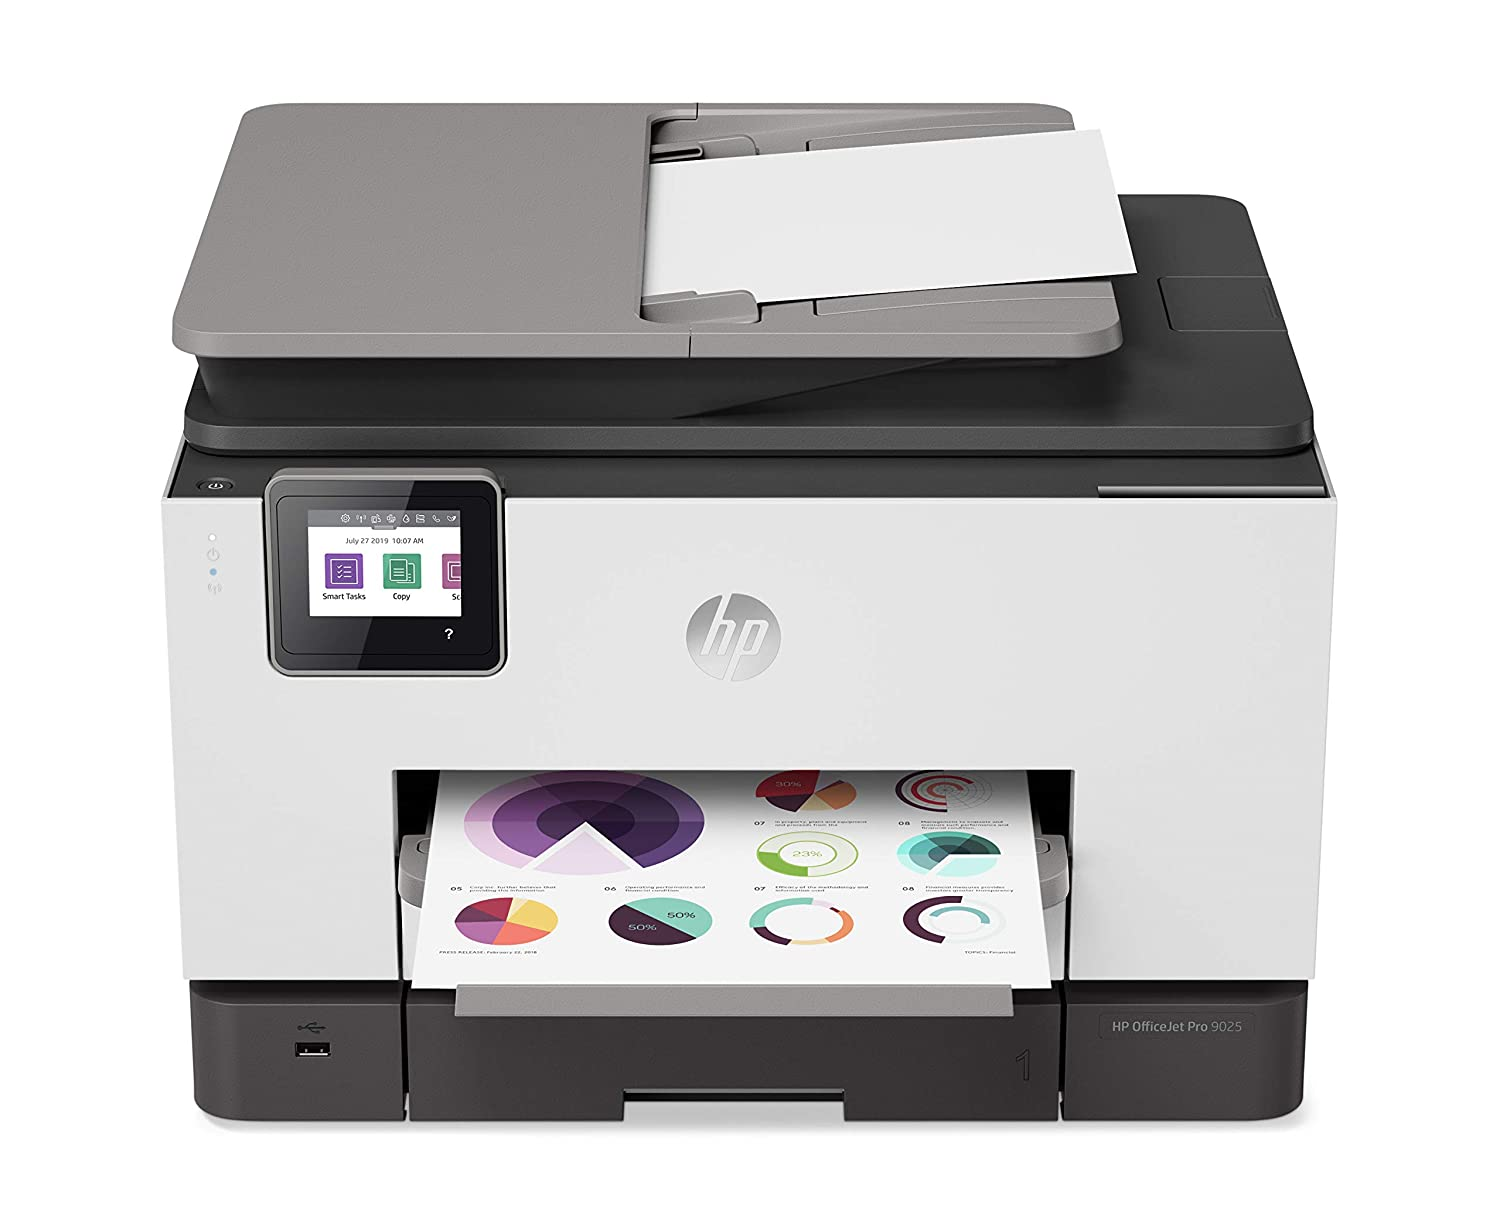 HP OfficeJet Pro 9020 All-in-One Wireless Printer, with Smart Tasks &  Advanced Scan Solutions for Smart Office Productivity (1MR78A)